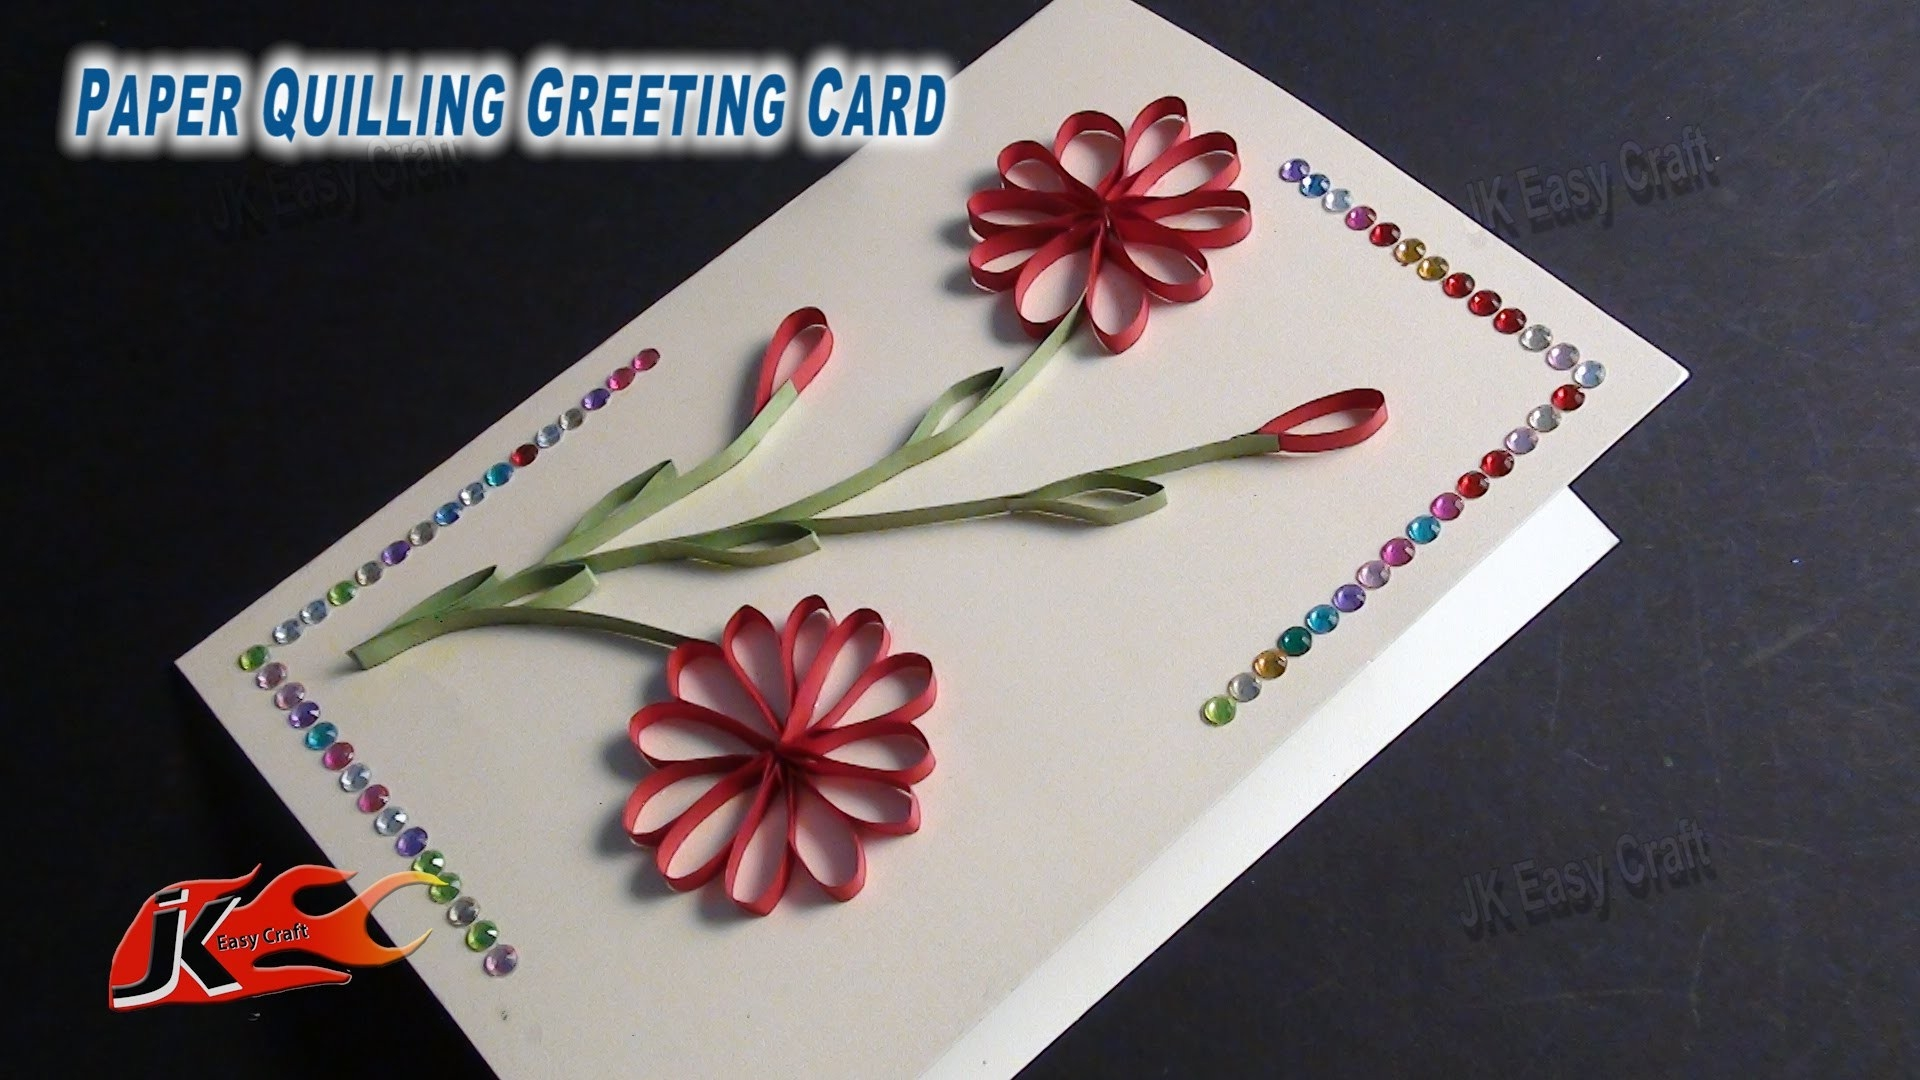 Diy Easy Paper Quilling Greeting Card Without Tool | How To Make within Paper Craft Ideas For Greeting Cards 28956